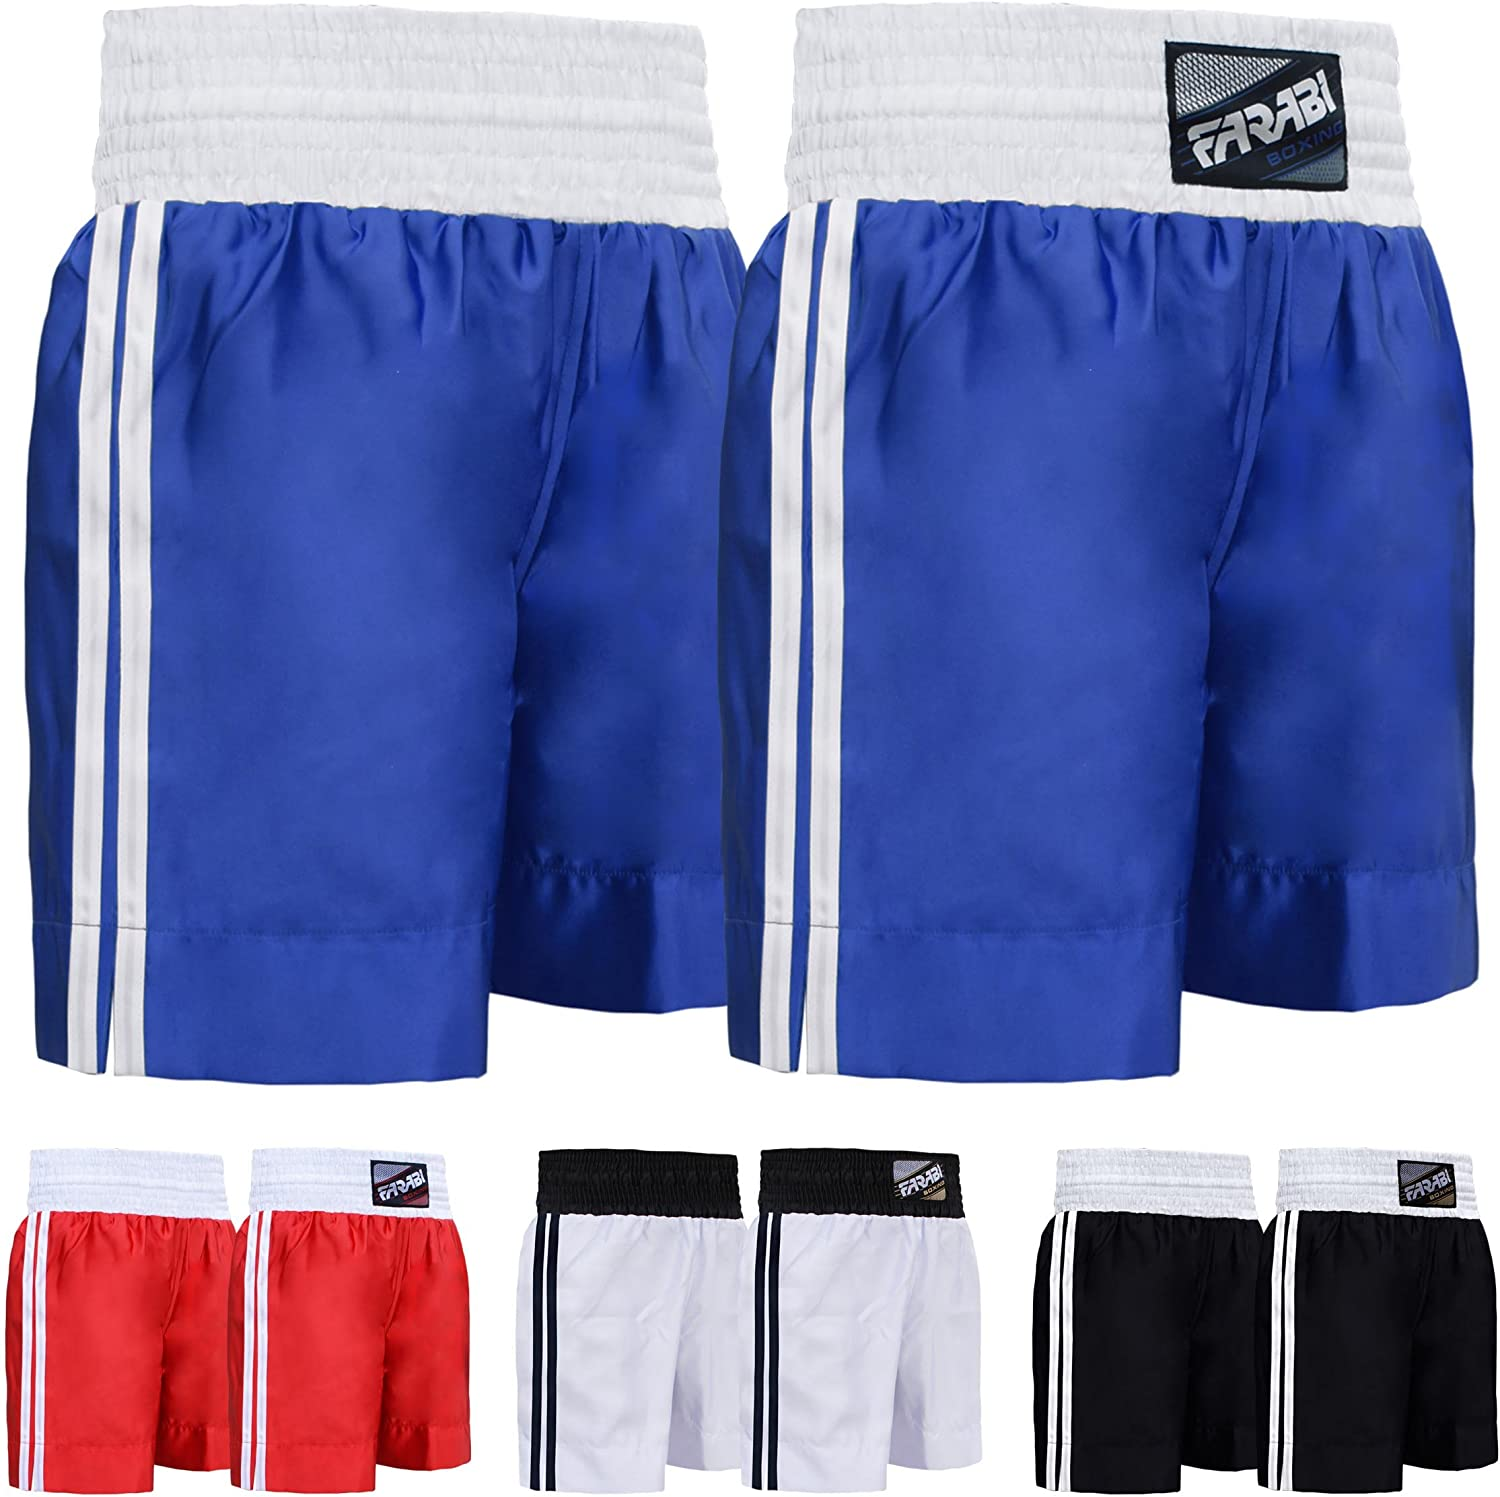 Farabi Sports Pro Boxing Shorts for Boxing Training Punching, Sparring Fitness Gym Kickboxing Equipment Trunks : Sports & Outdoors